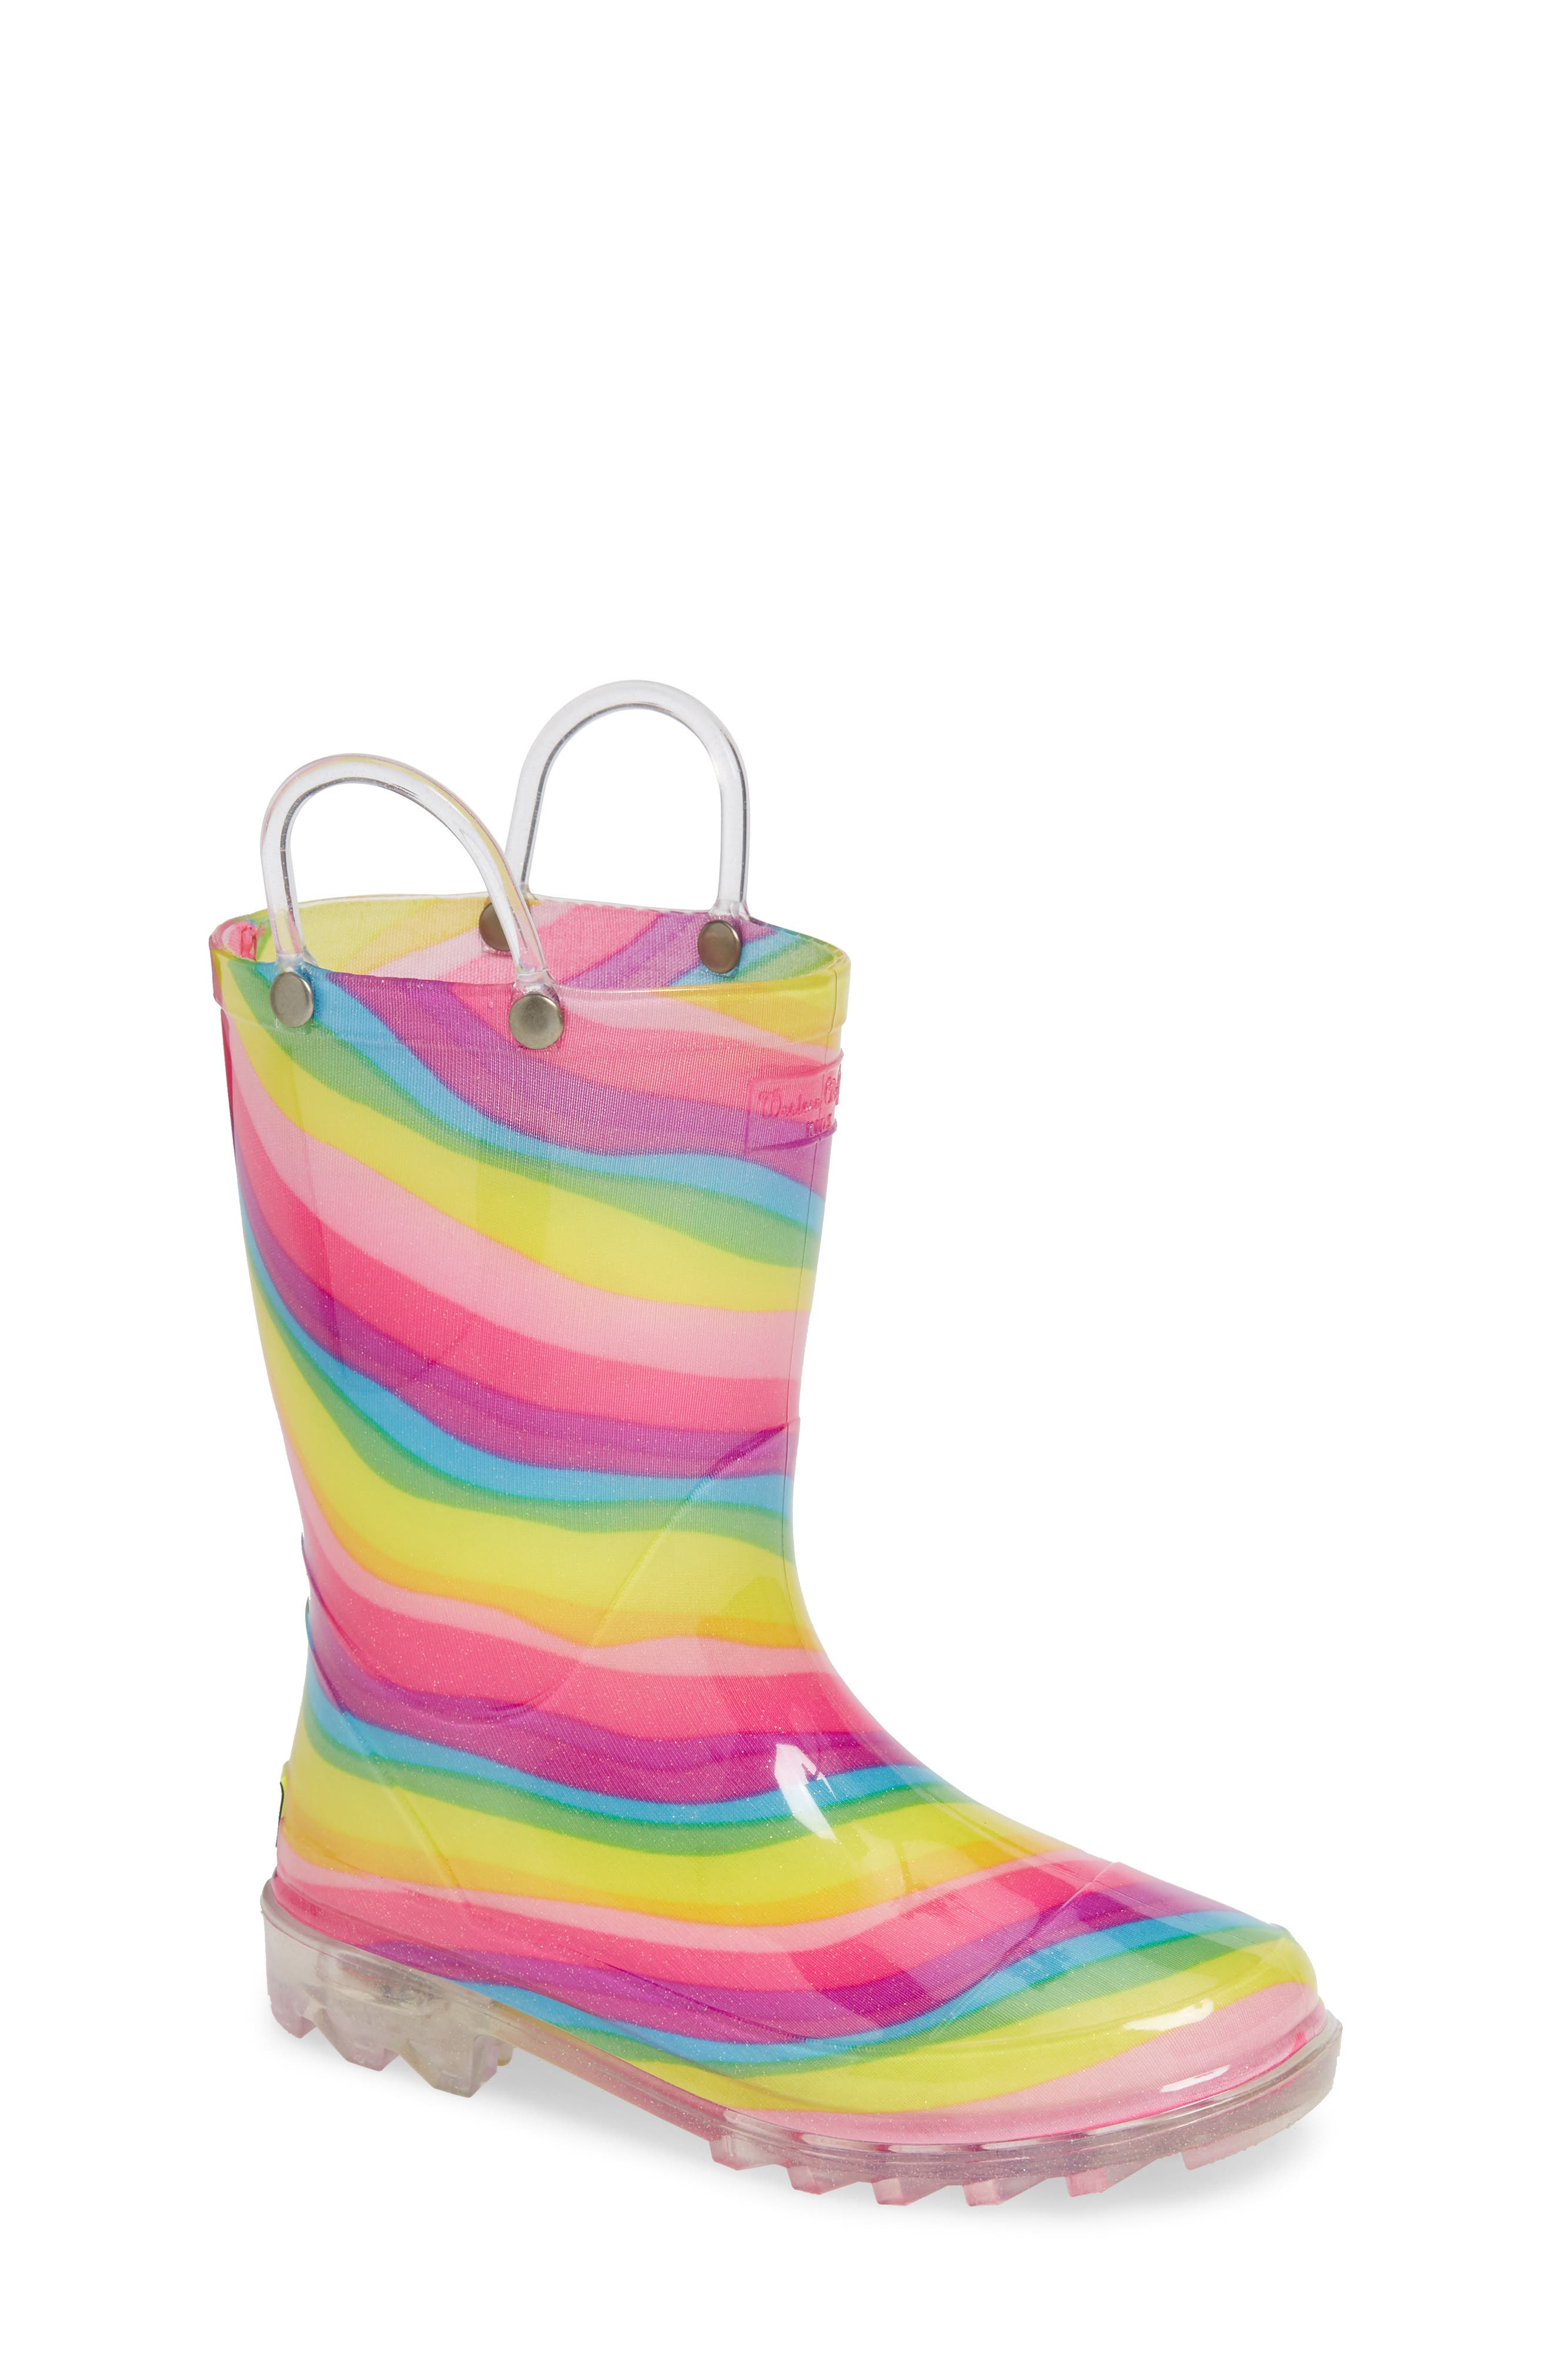 Rainbow Light-Up Waterproof Rain Boot,                             Main thumbnail 1, color,                             MULTI